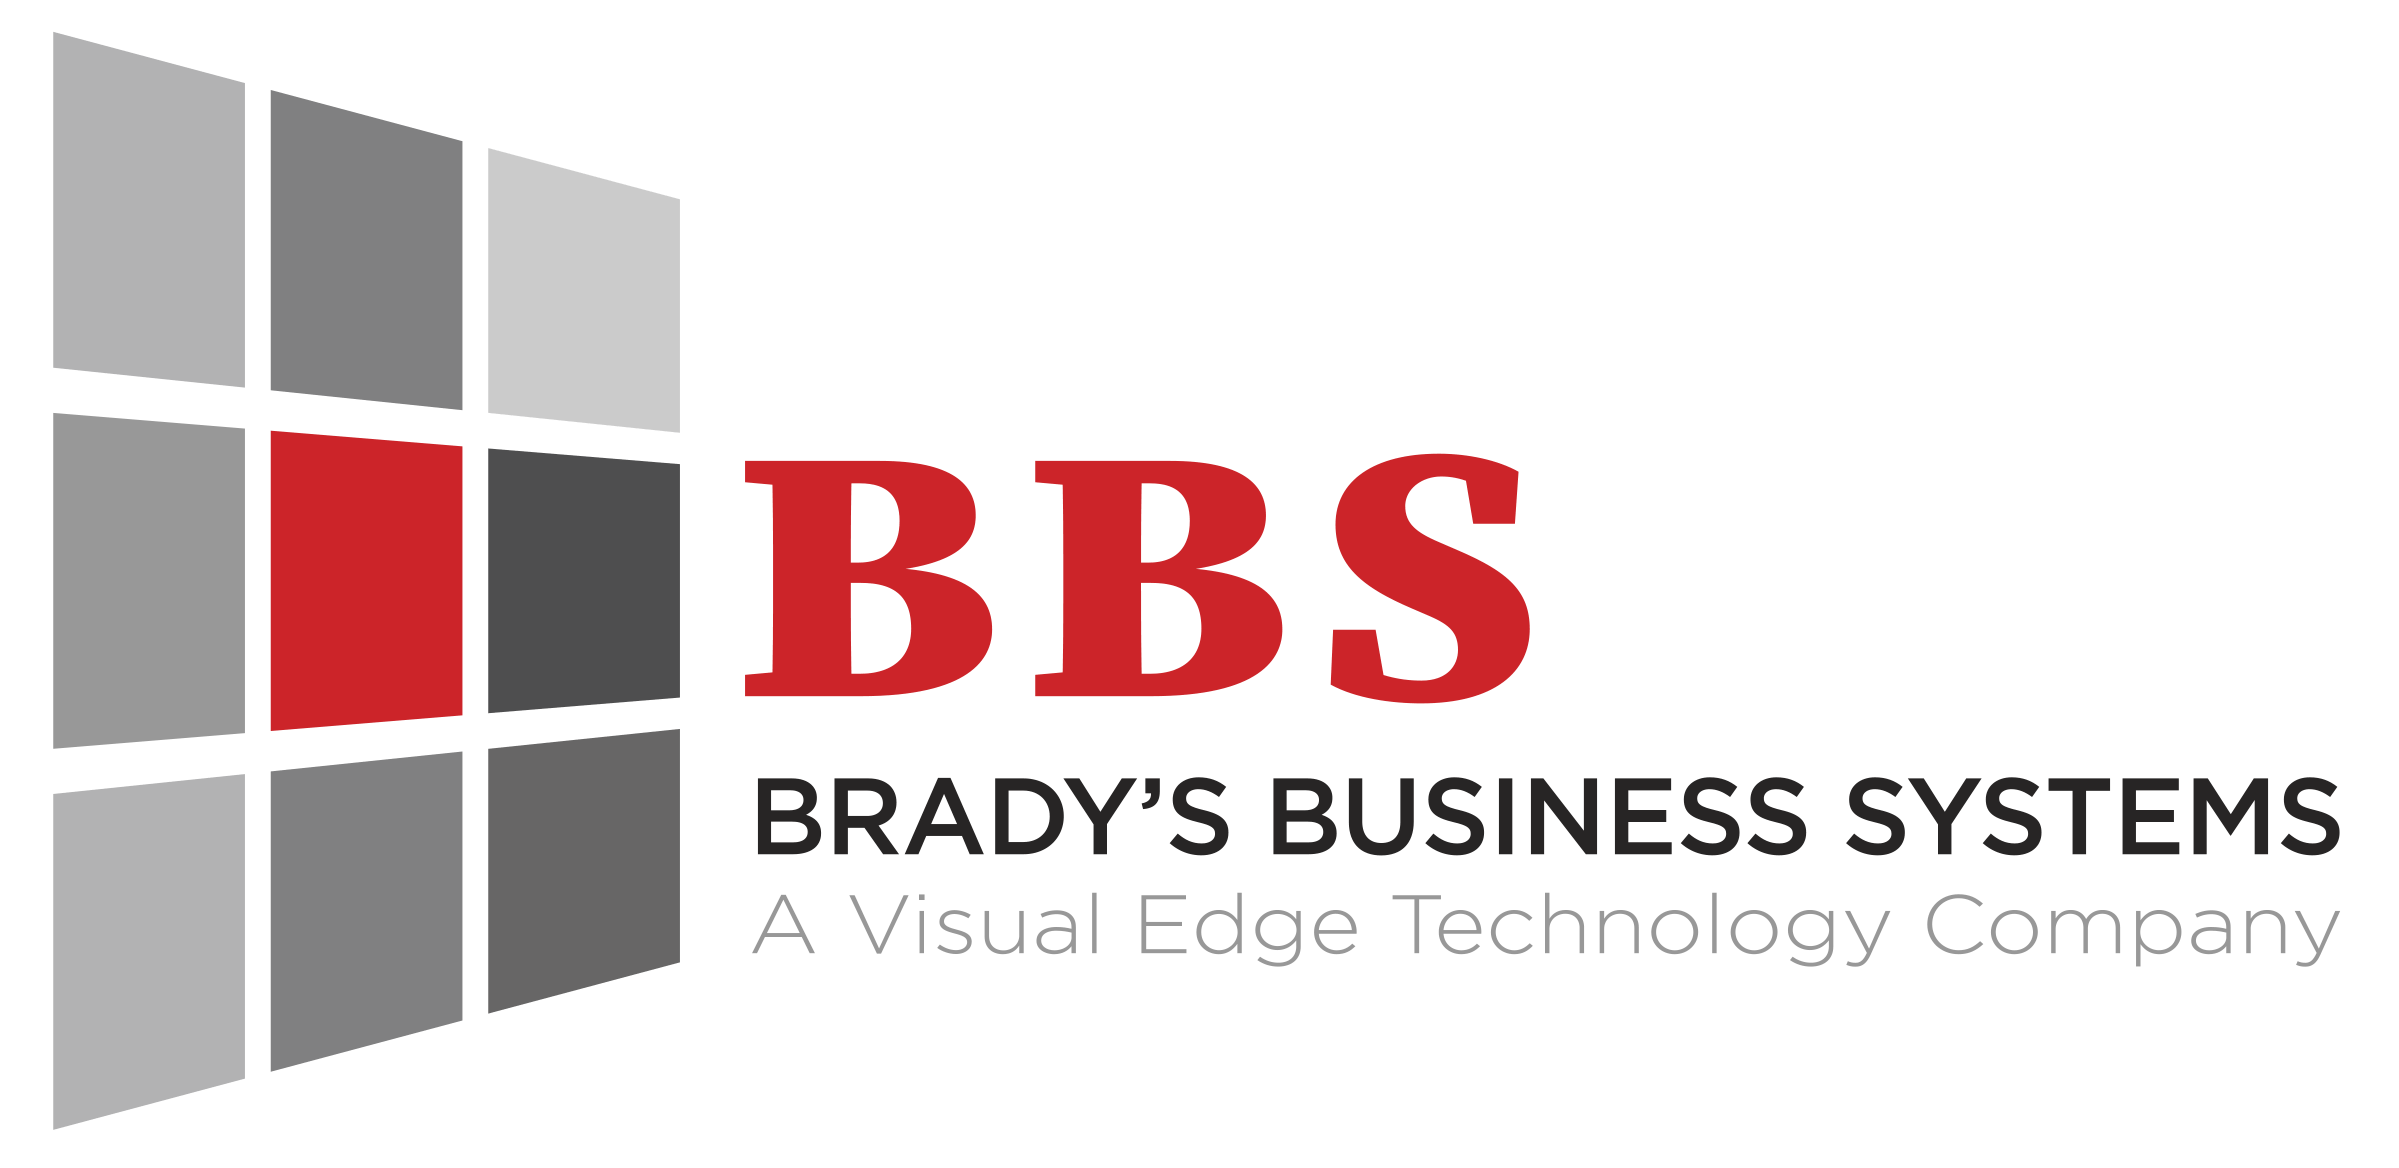 Brady's Business Systems